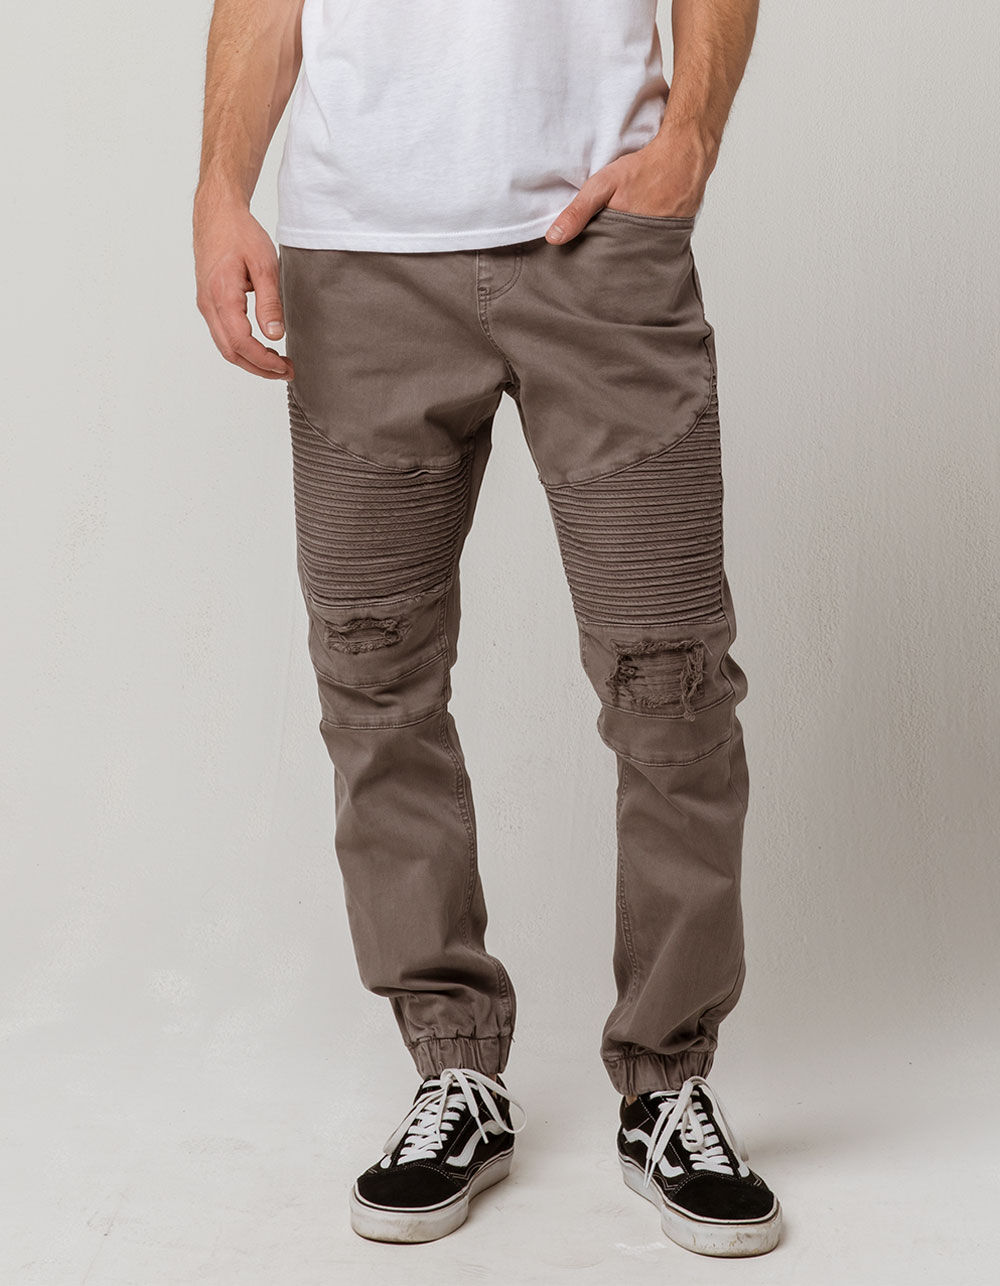 EAST POINTE Moto Destruction Denim Jogger Pants